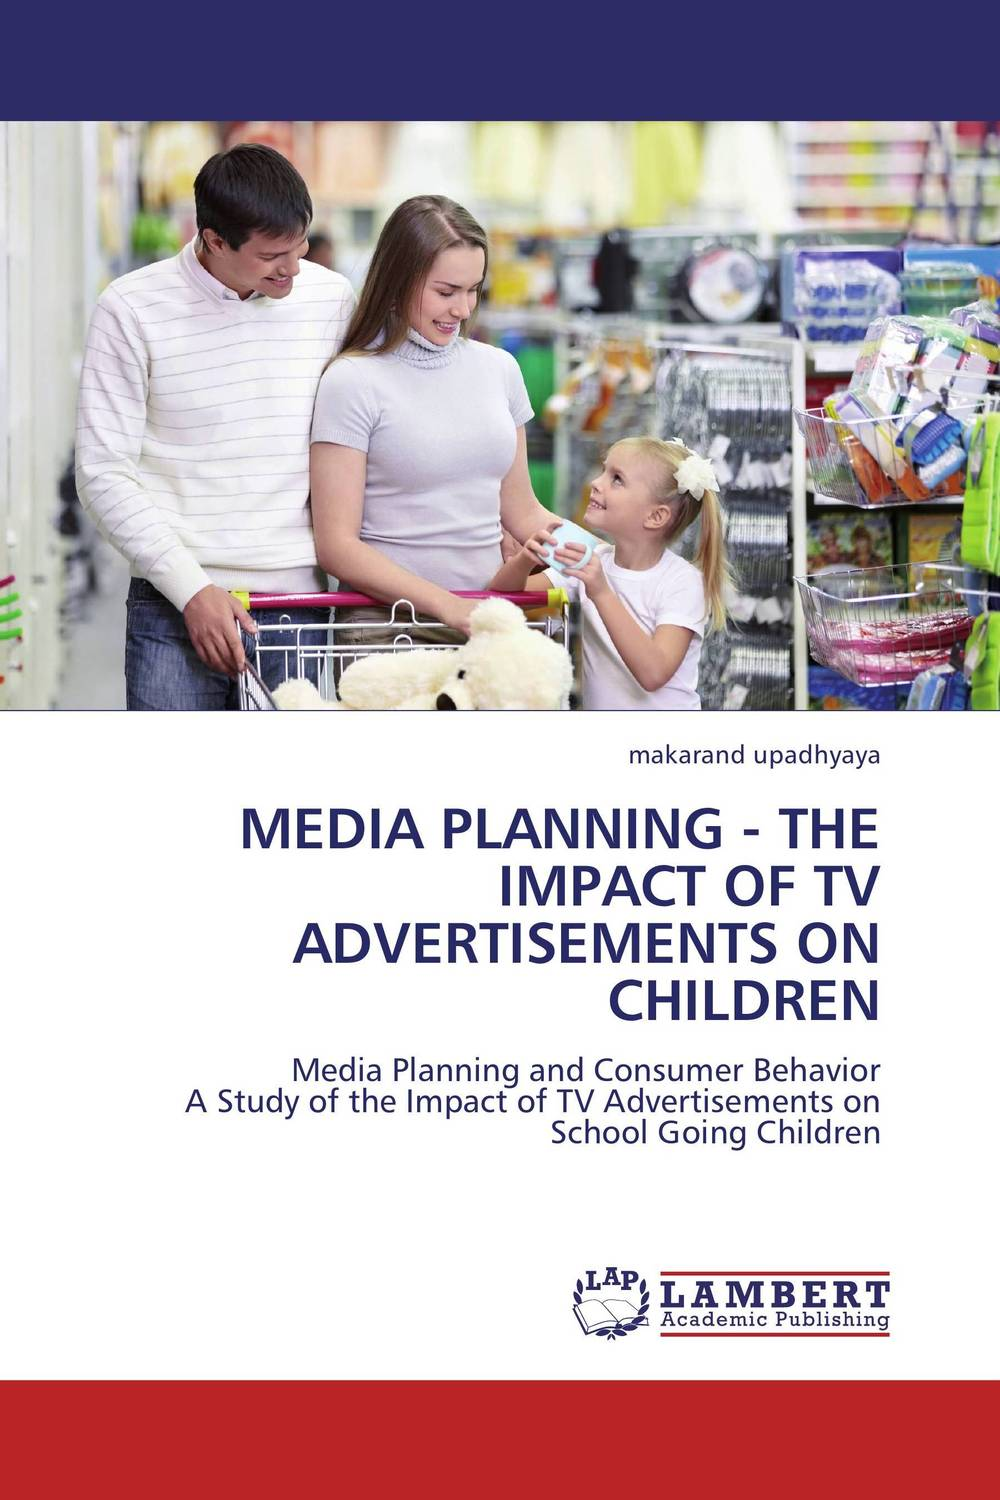 MEDIA PLANNING - THE IMPACT OF TV ADVERTISEMENTS ON CHILDREN alexander mishkin how to stay young it